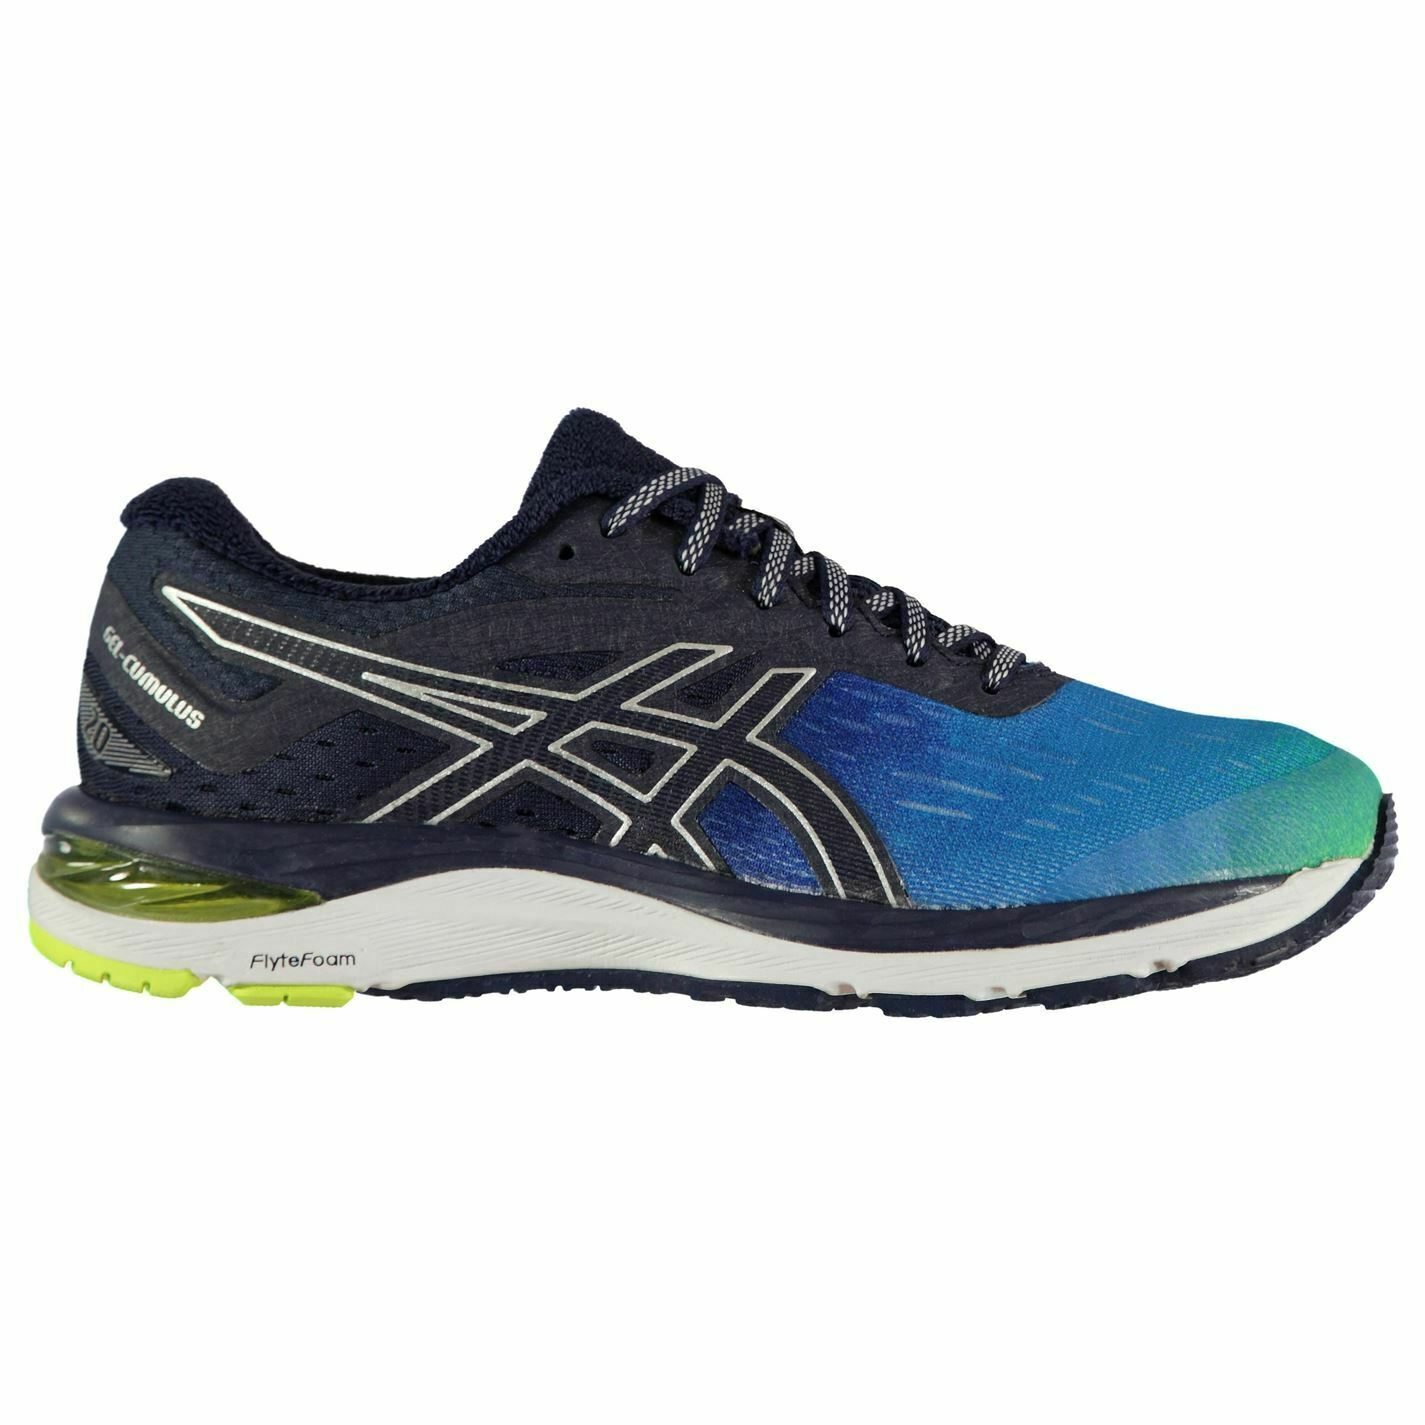 Asics Womens  Gel Cumulus 20 Running shoes Road Lace Up Ortholite  save up to 30-50% off